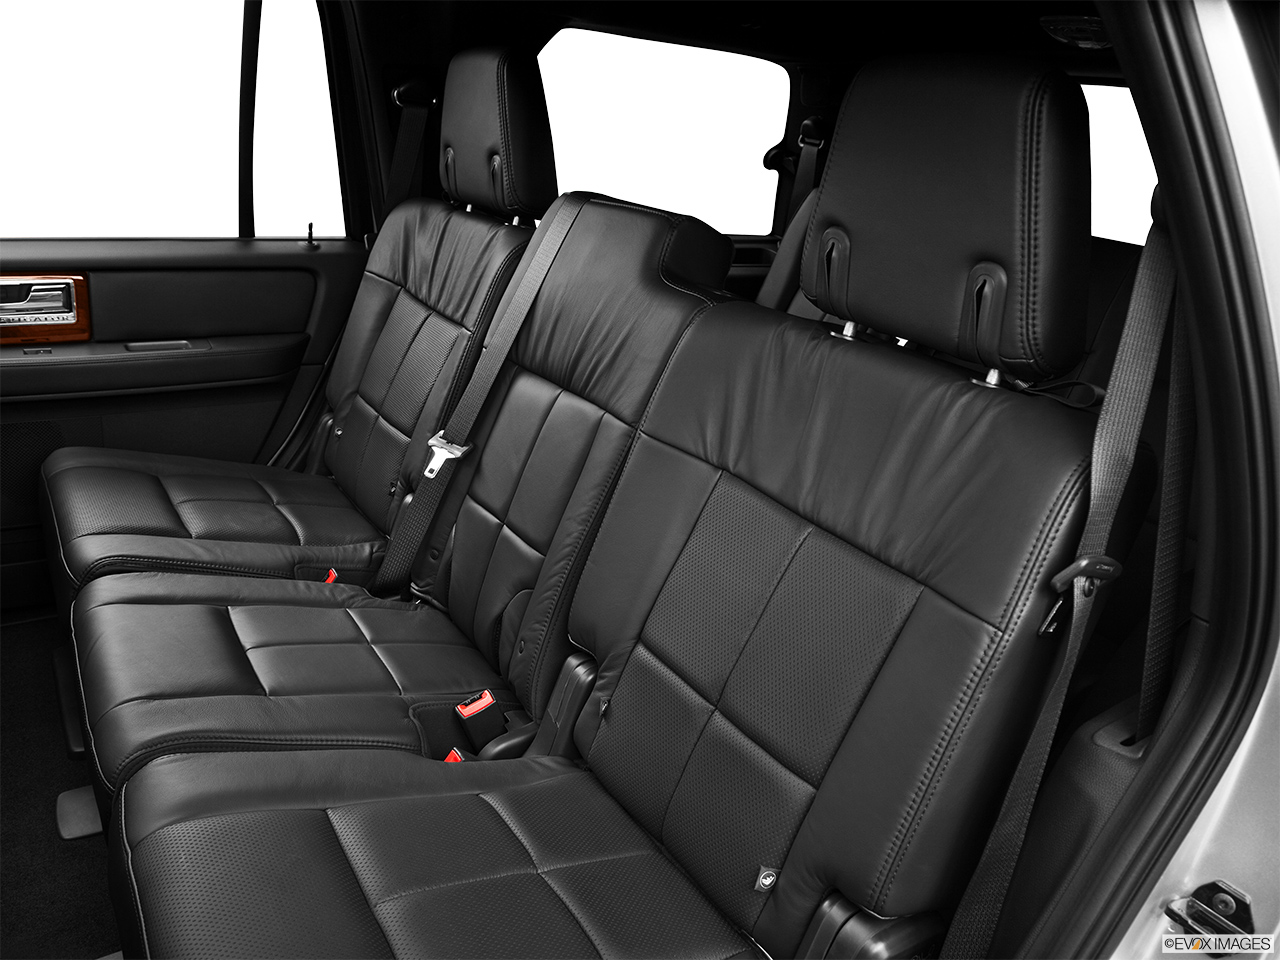 2013 Lincoln Navigator Base Rear seats from Drivers Side.